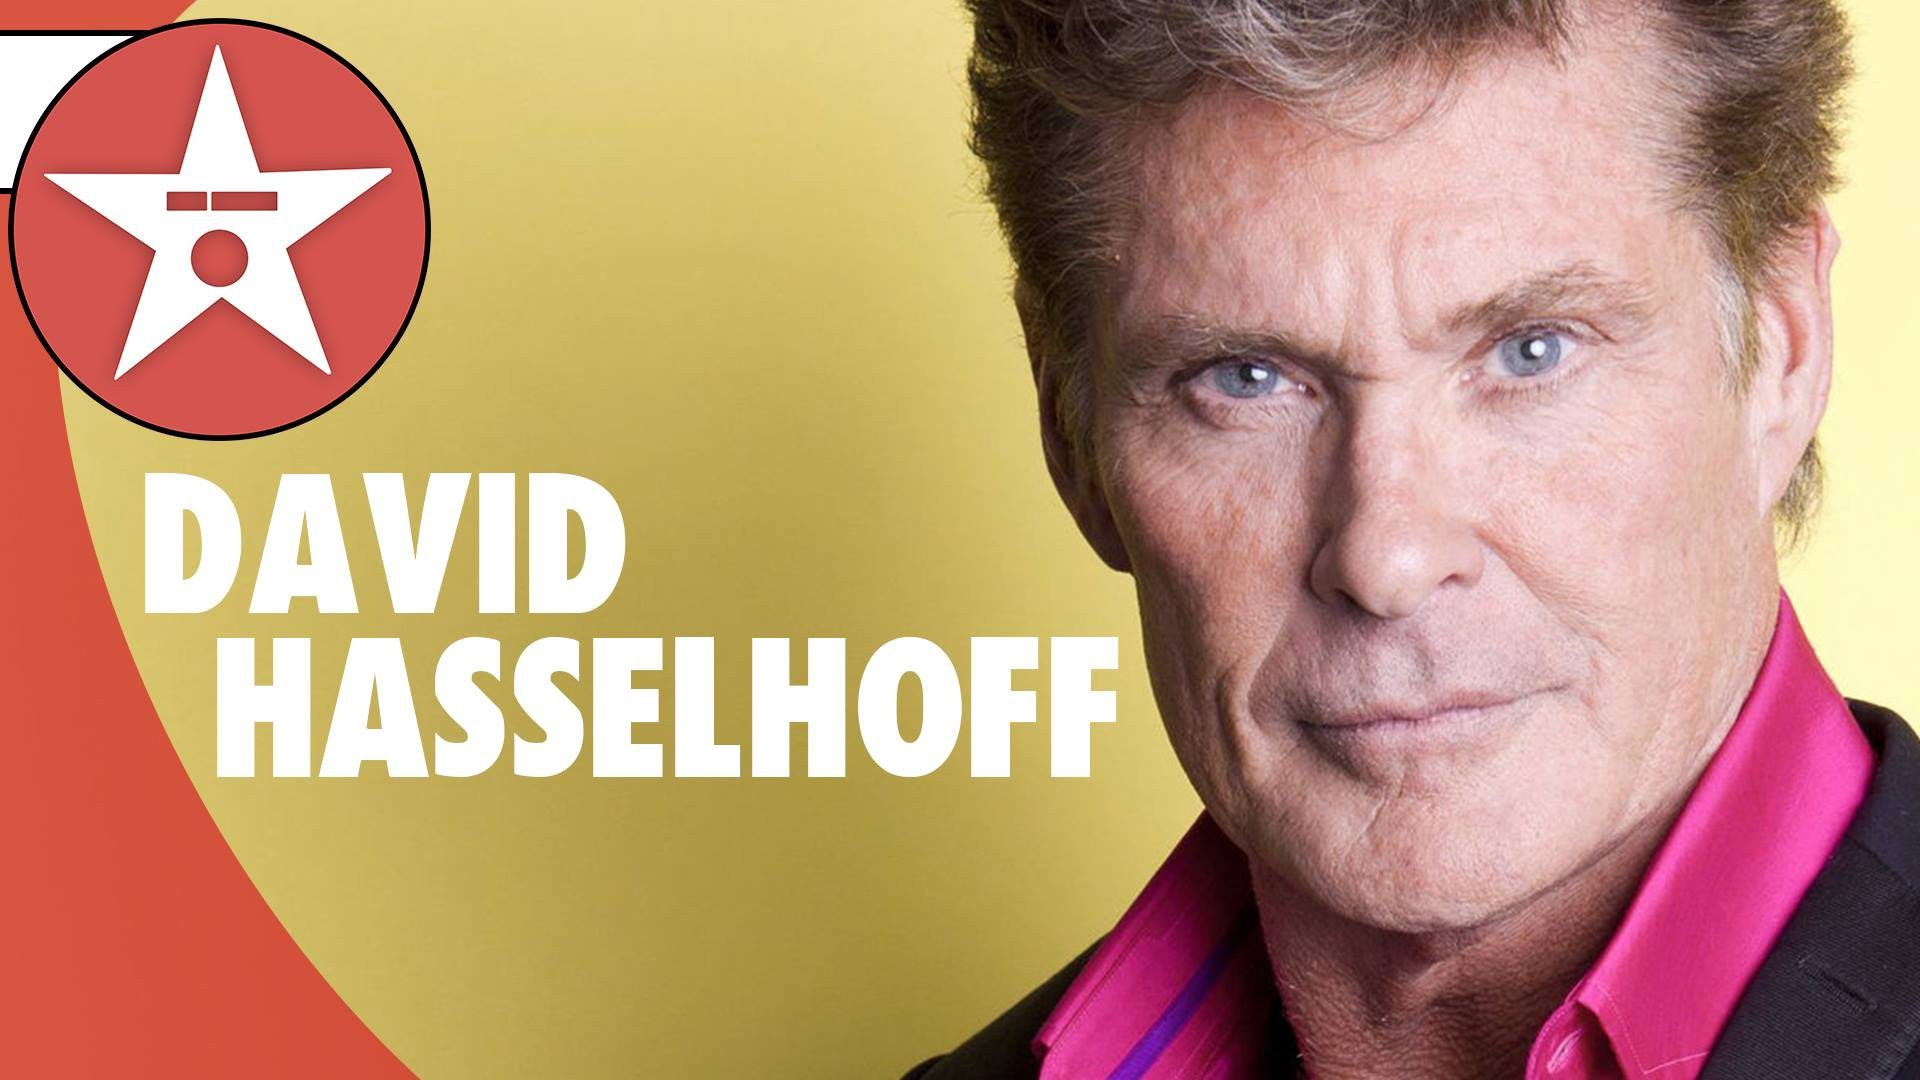 David Hasselhoff Wallpaper Puppies The Galleries Of Hd Wallpaper